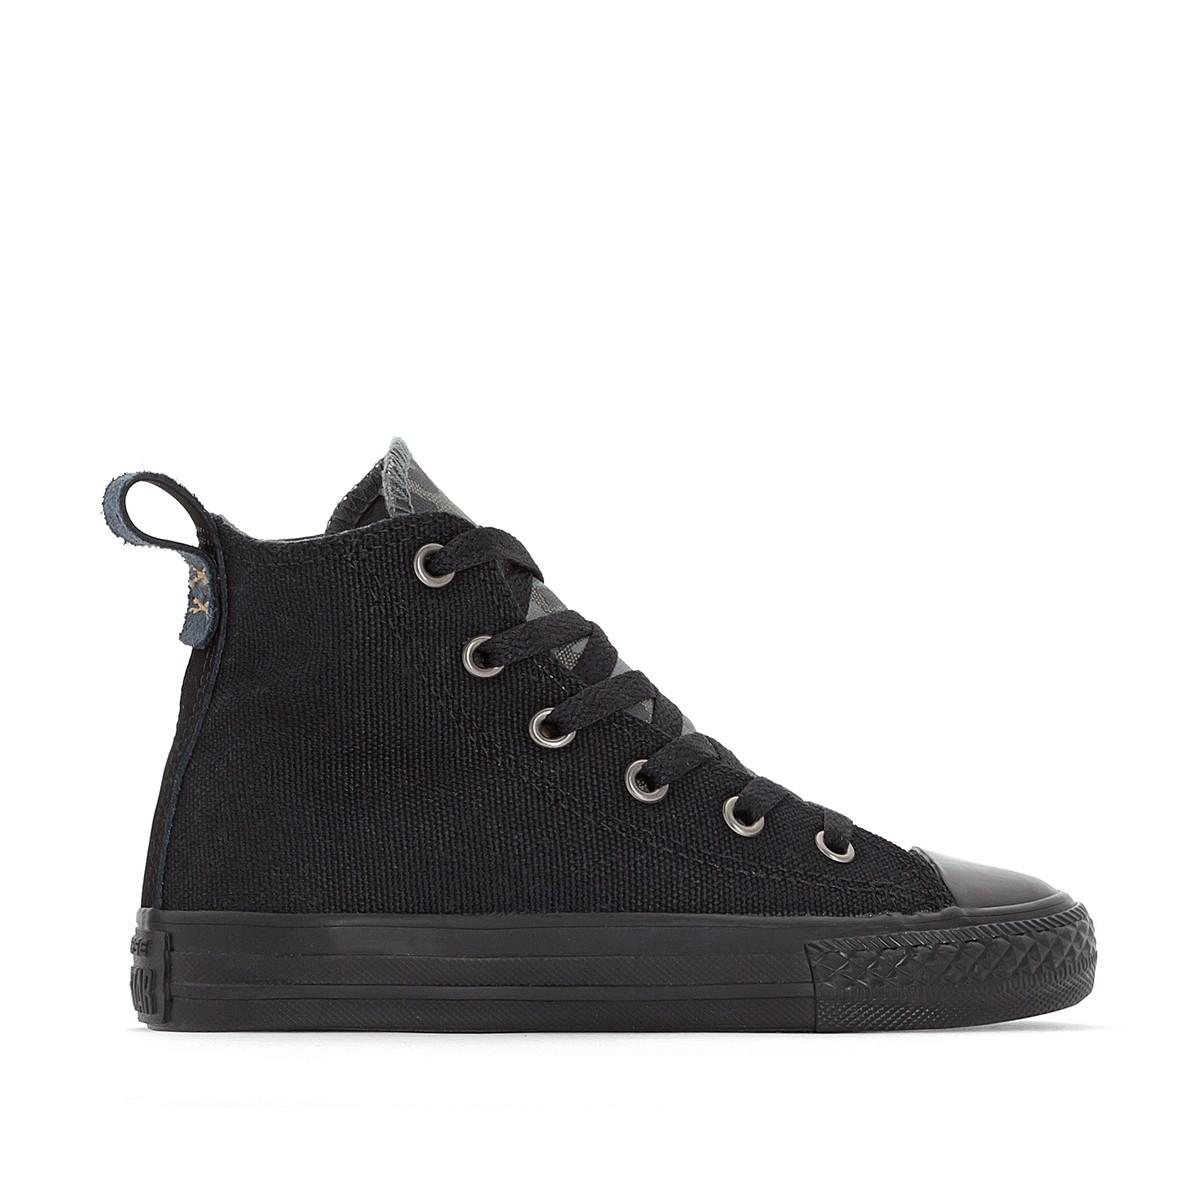 Lyst - Converse Chuck Taylor All Star High Top Trainers in Black for Men 2ebdb4db73